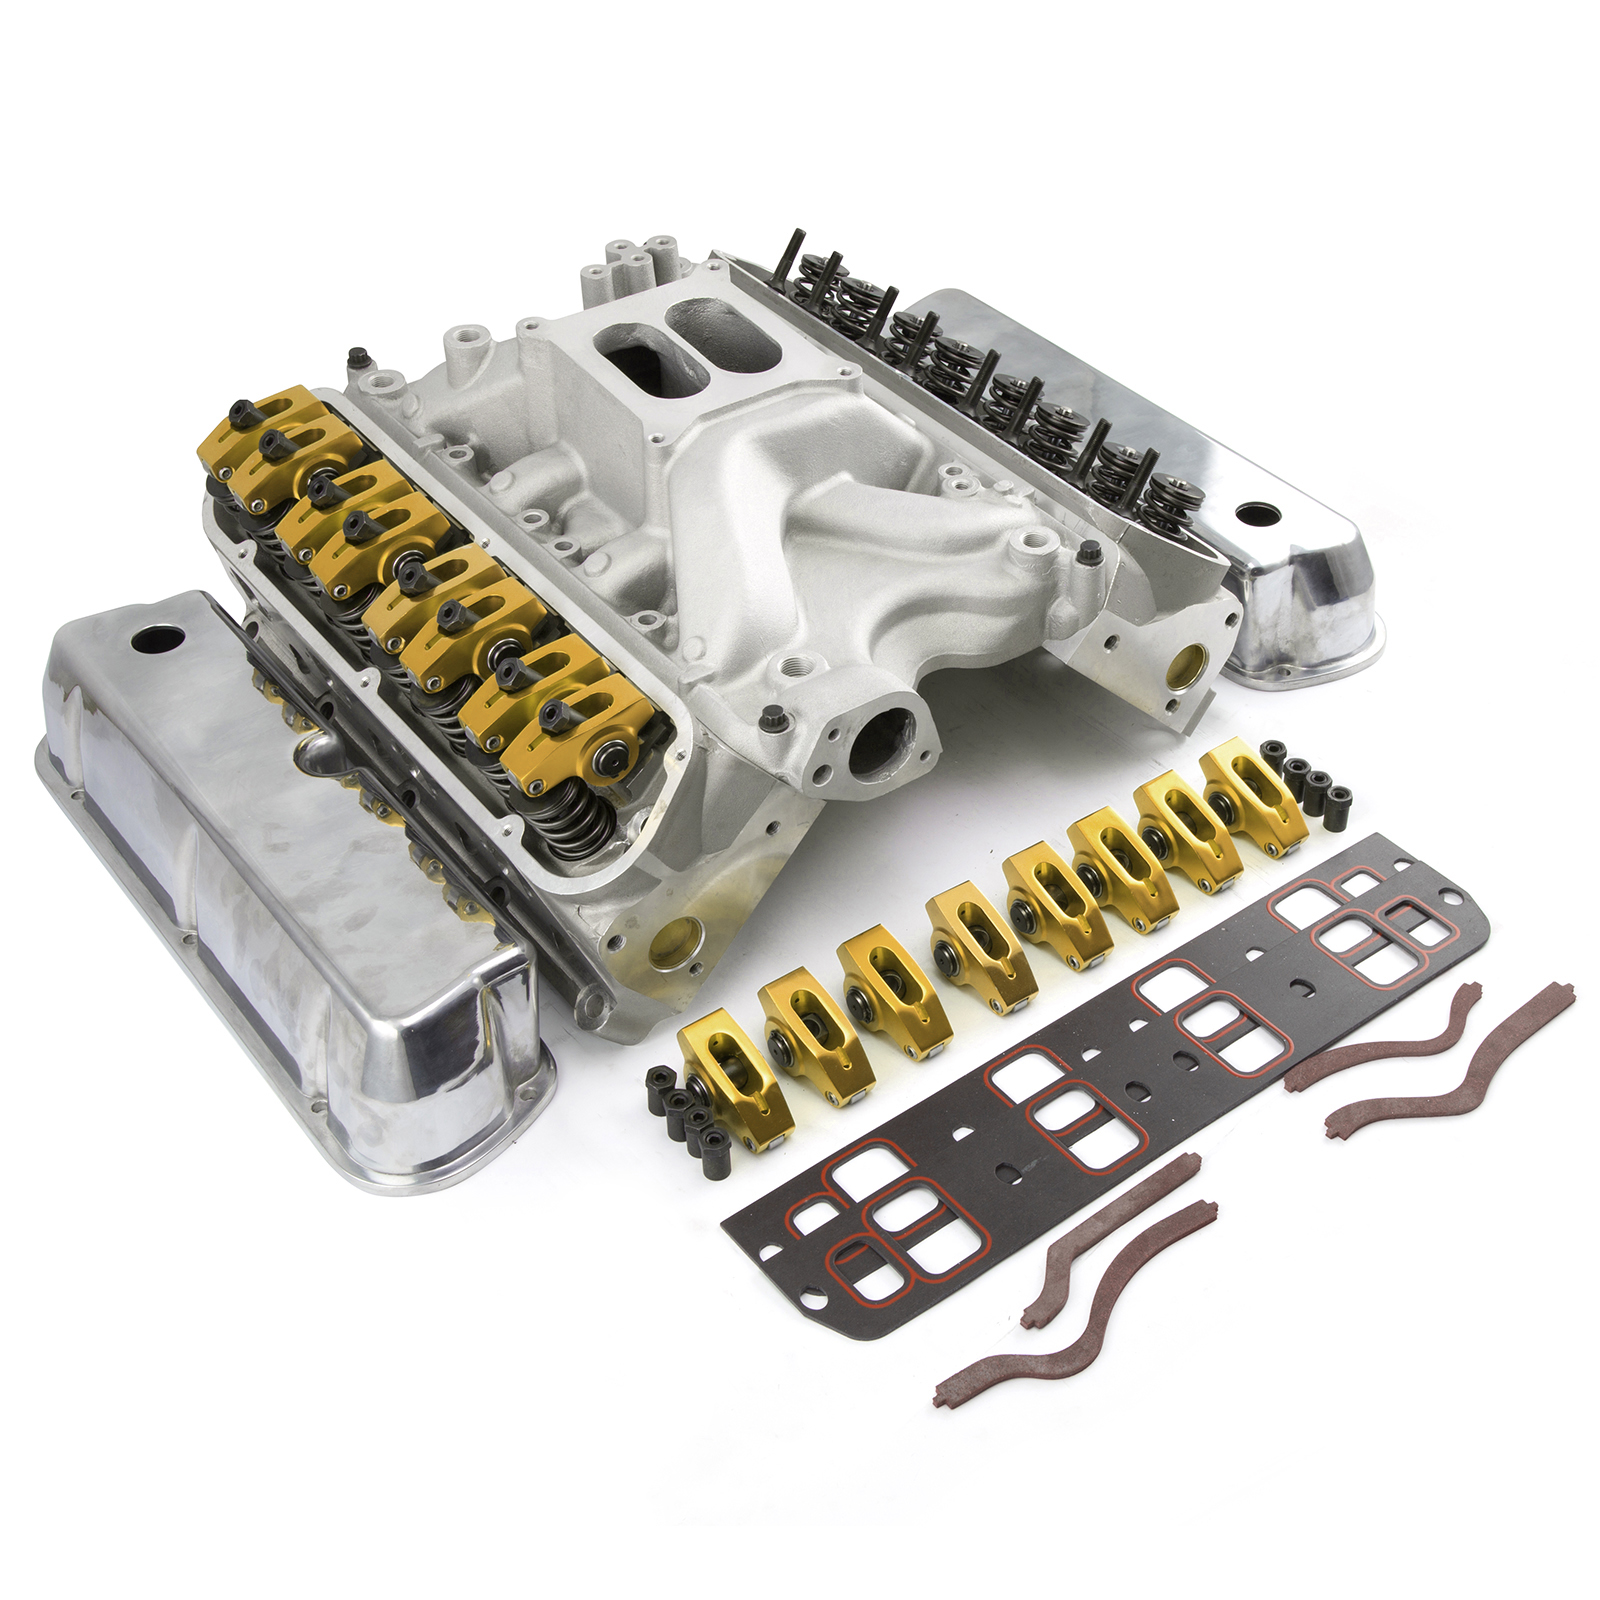 Ford 351W Windsor Hyd FT 175cc Cylinder Head Top End Engine Combo Kit